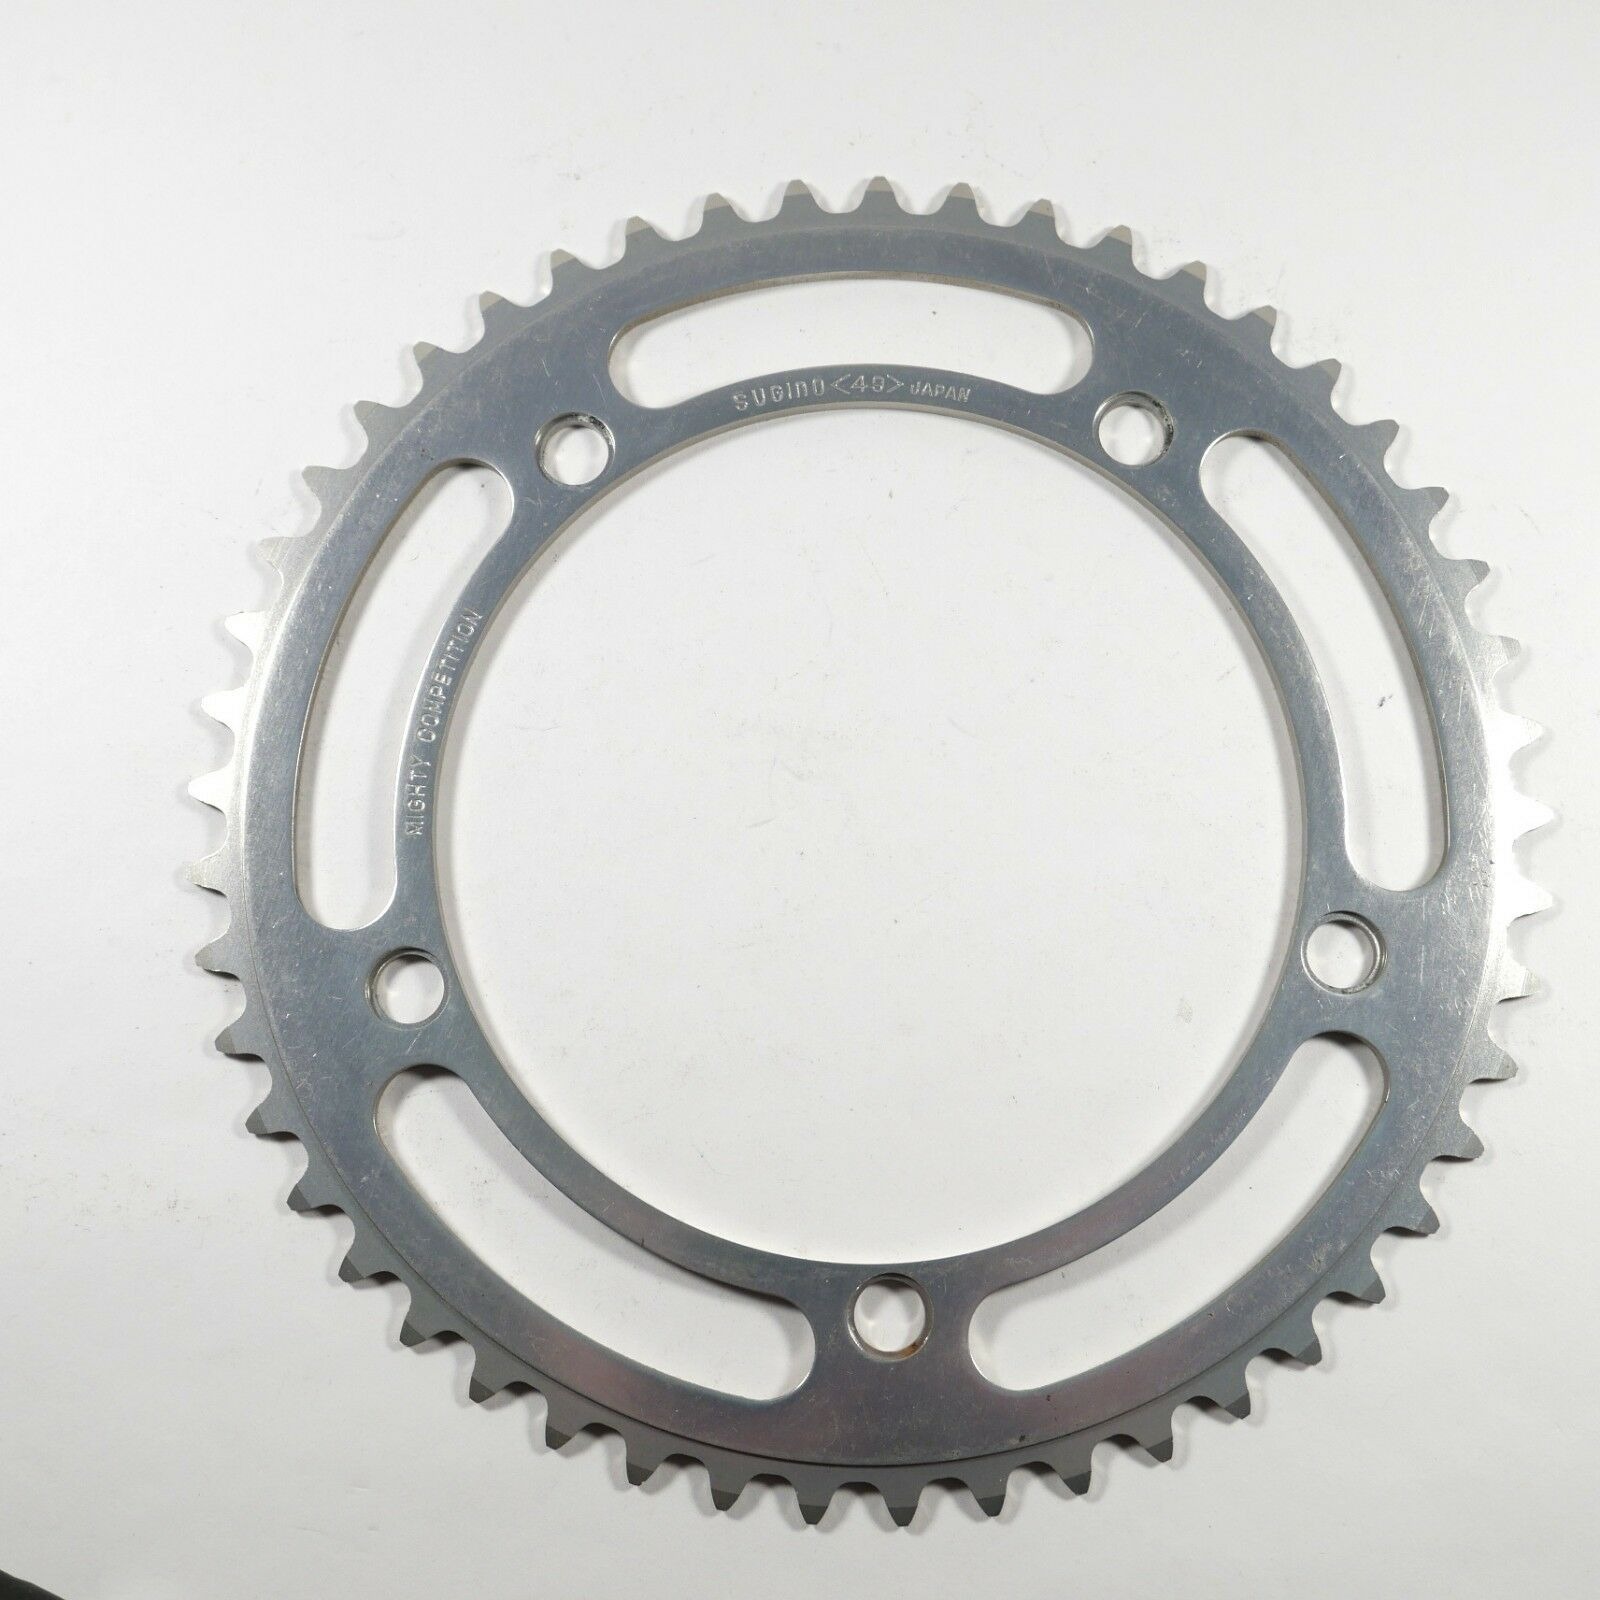 Sugino Mighty Competition 144 mm BCD 49T Chainring 3 32  NOS